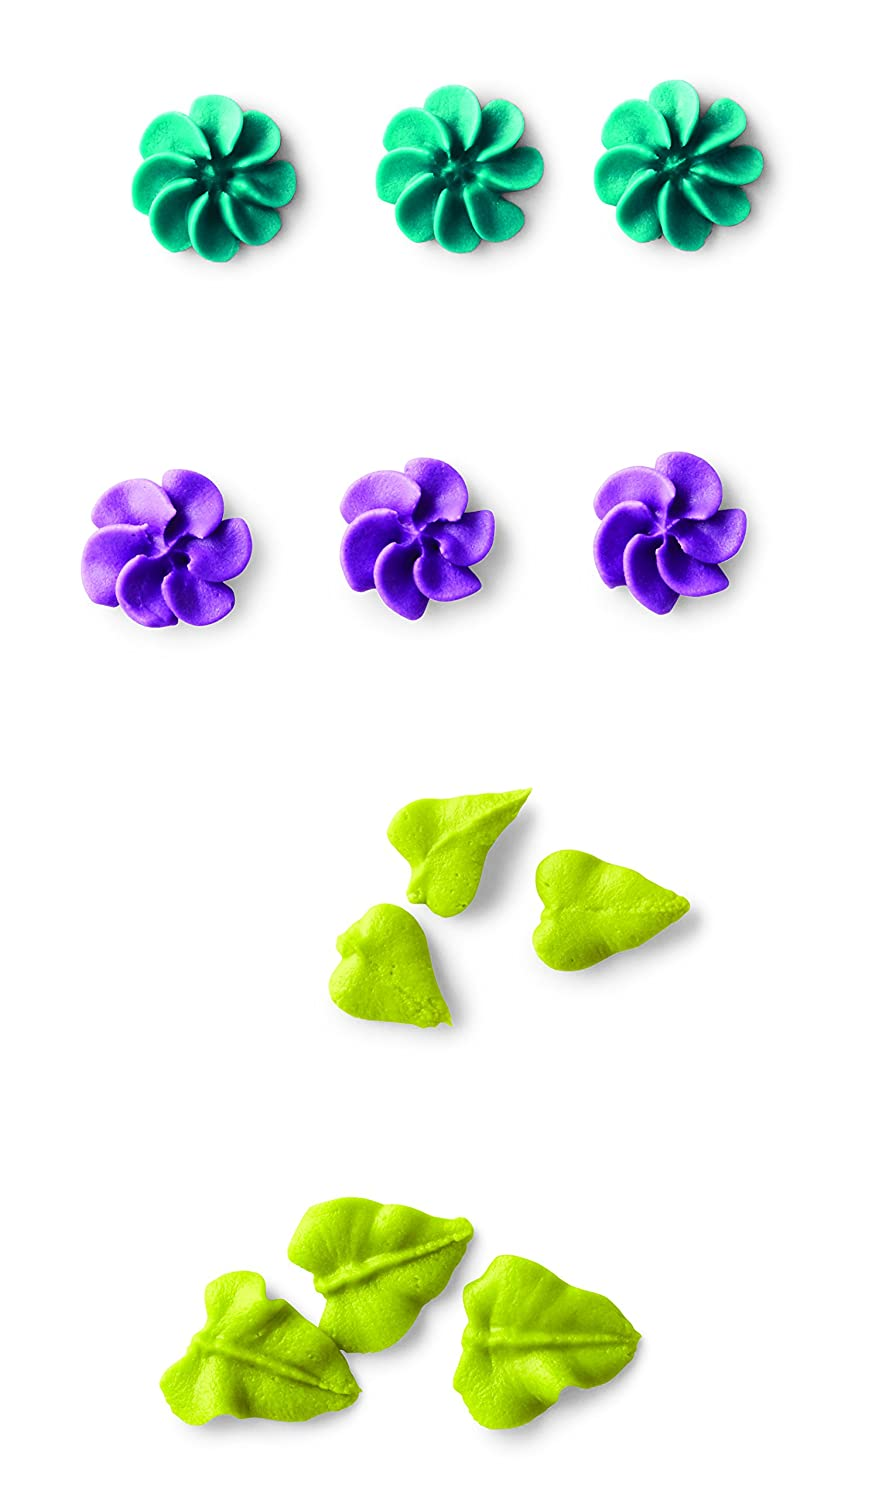 Wilton 418-9613 4 Piece Flower Icing Tip Set